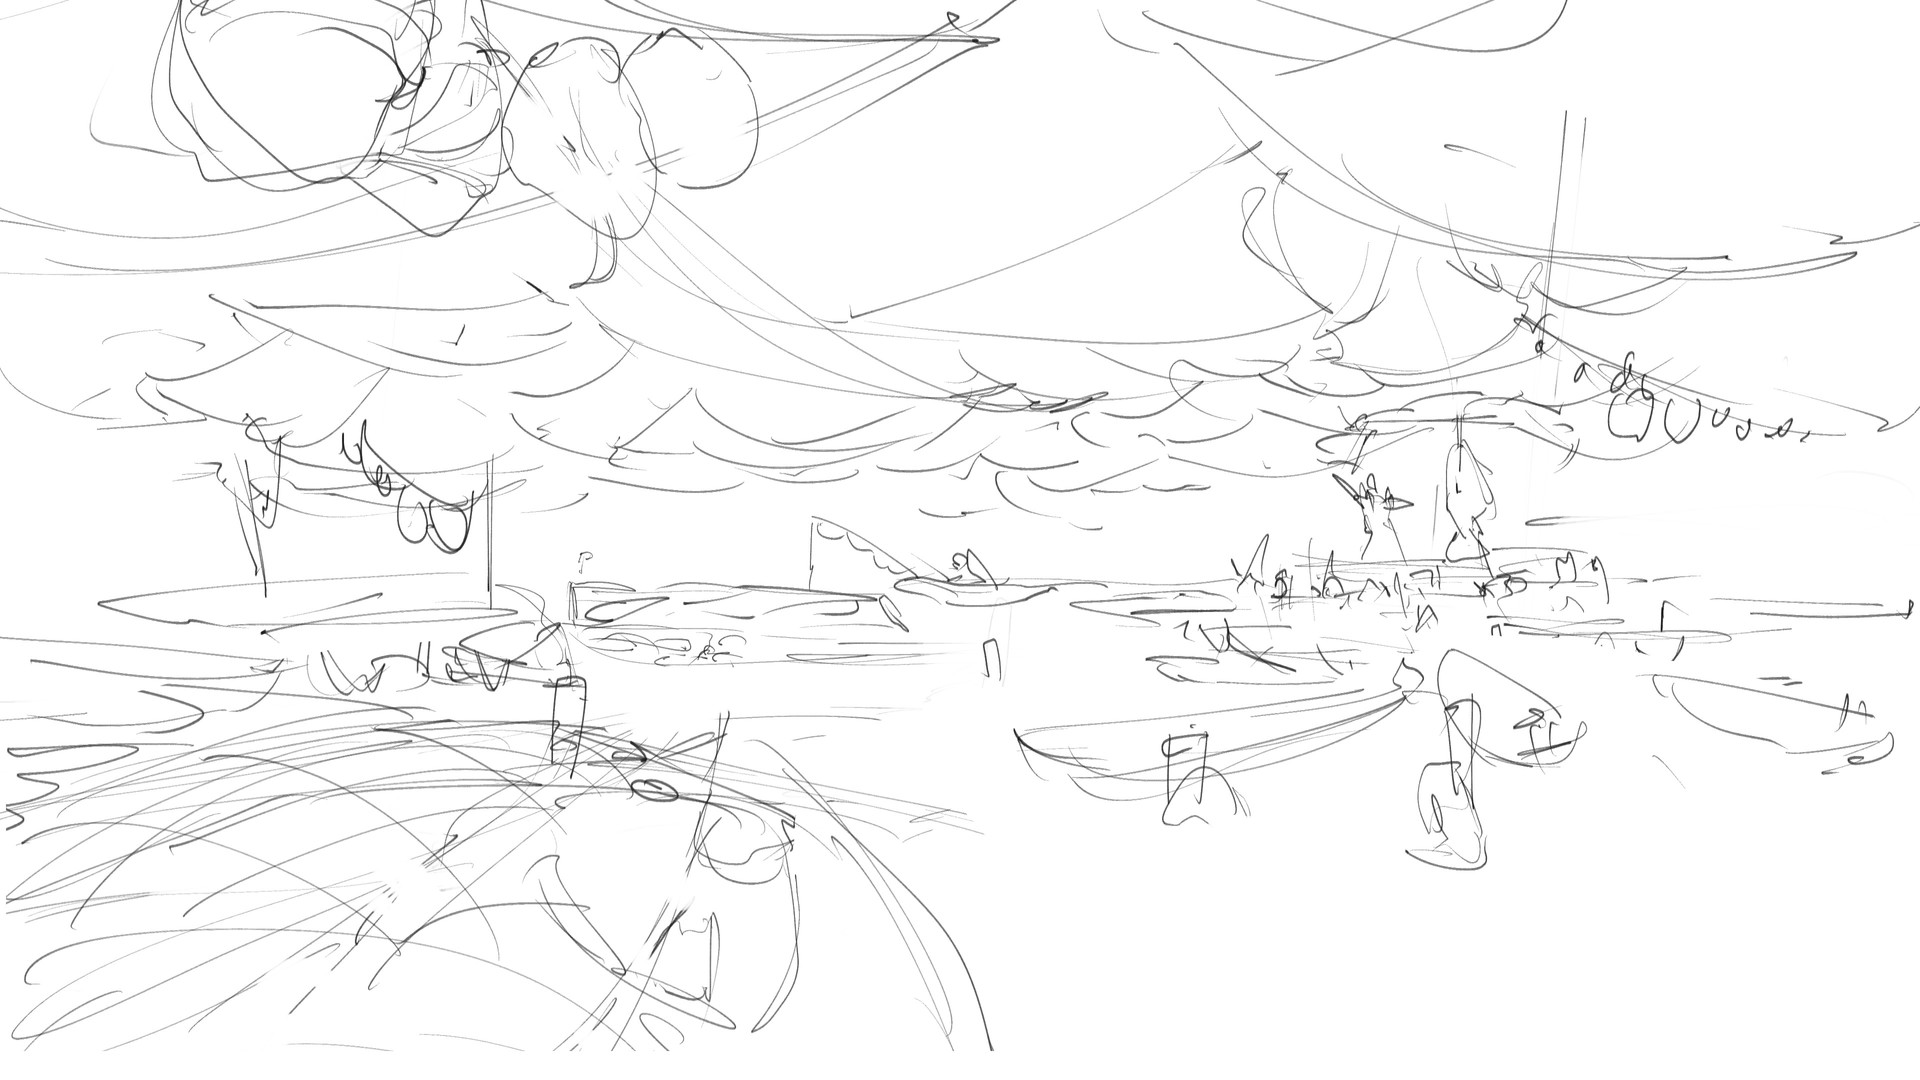 Sketch of the fish market. I had a clear idea from the start. Inspired by asian floating markets.